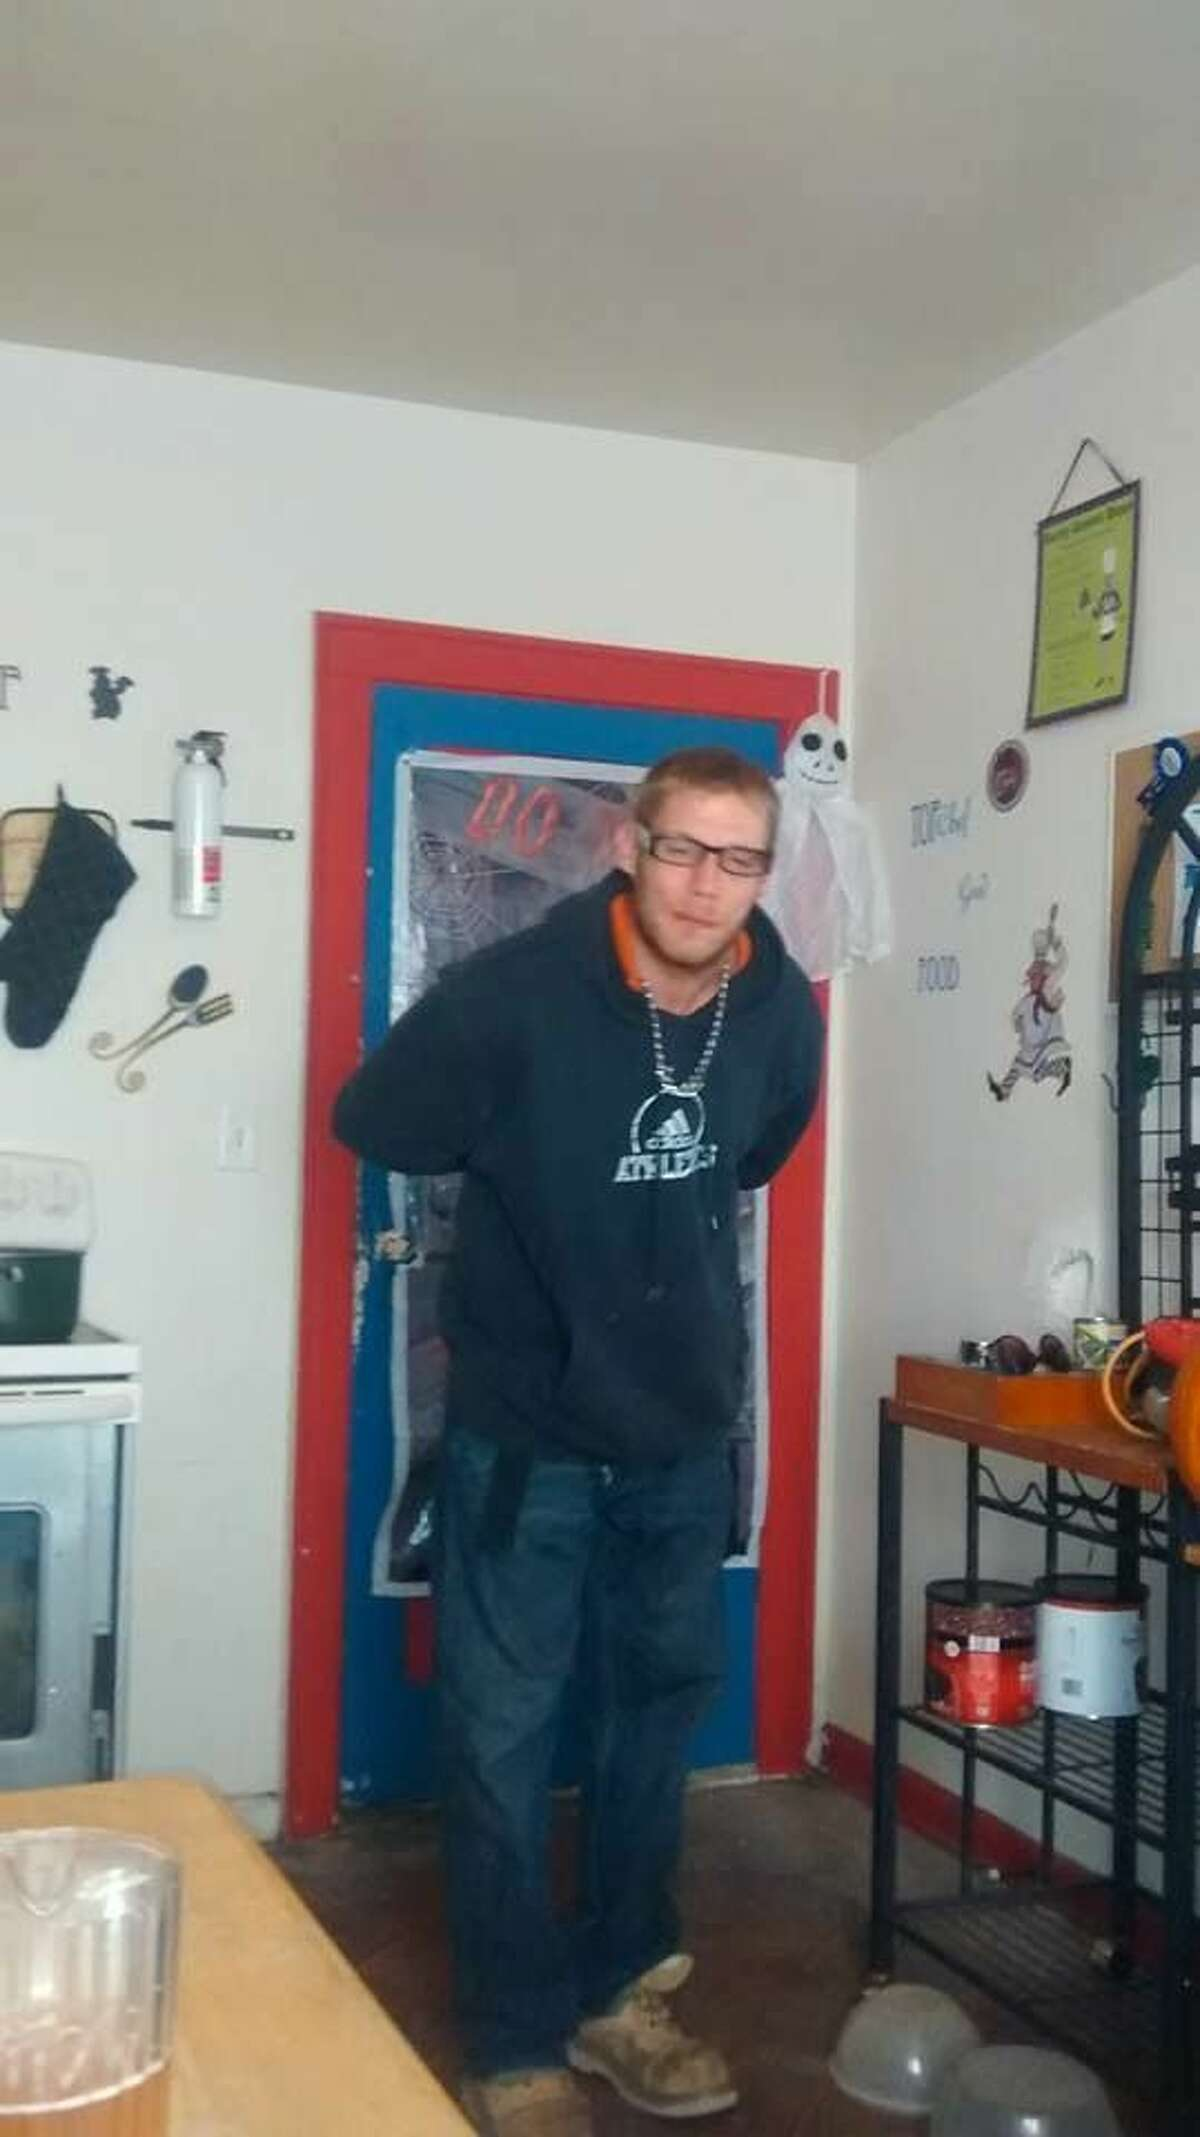 Matthew Schlicker is shown in thisphoto provided by the Midland Police Department.